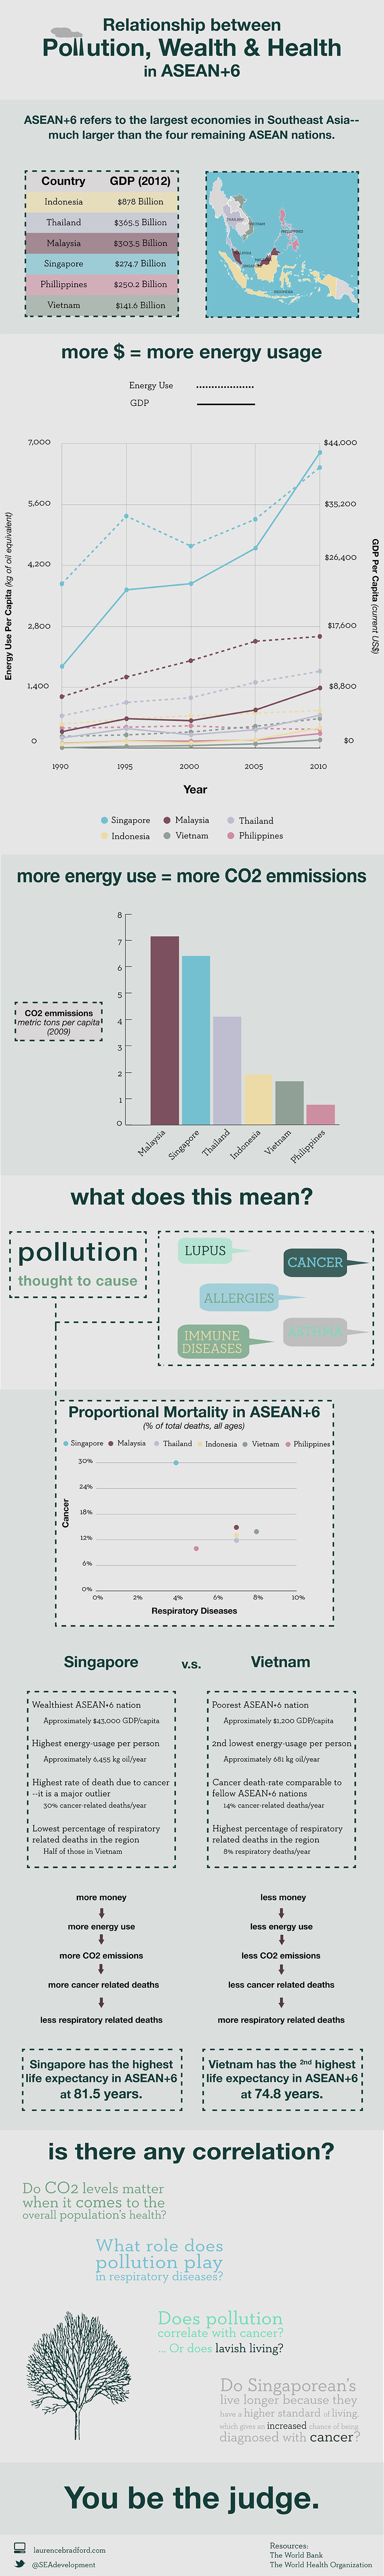 Pollution, Wealth and Health in ASEAN + 6